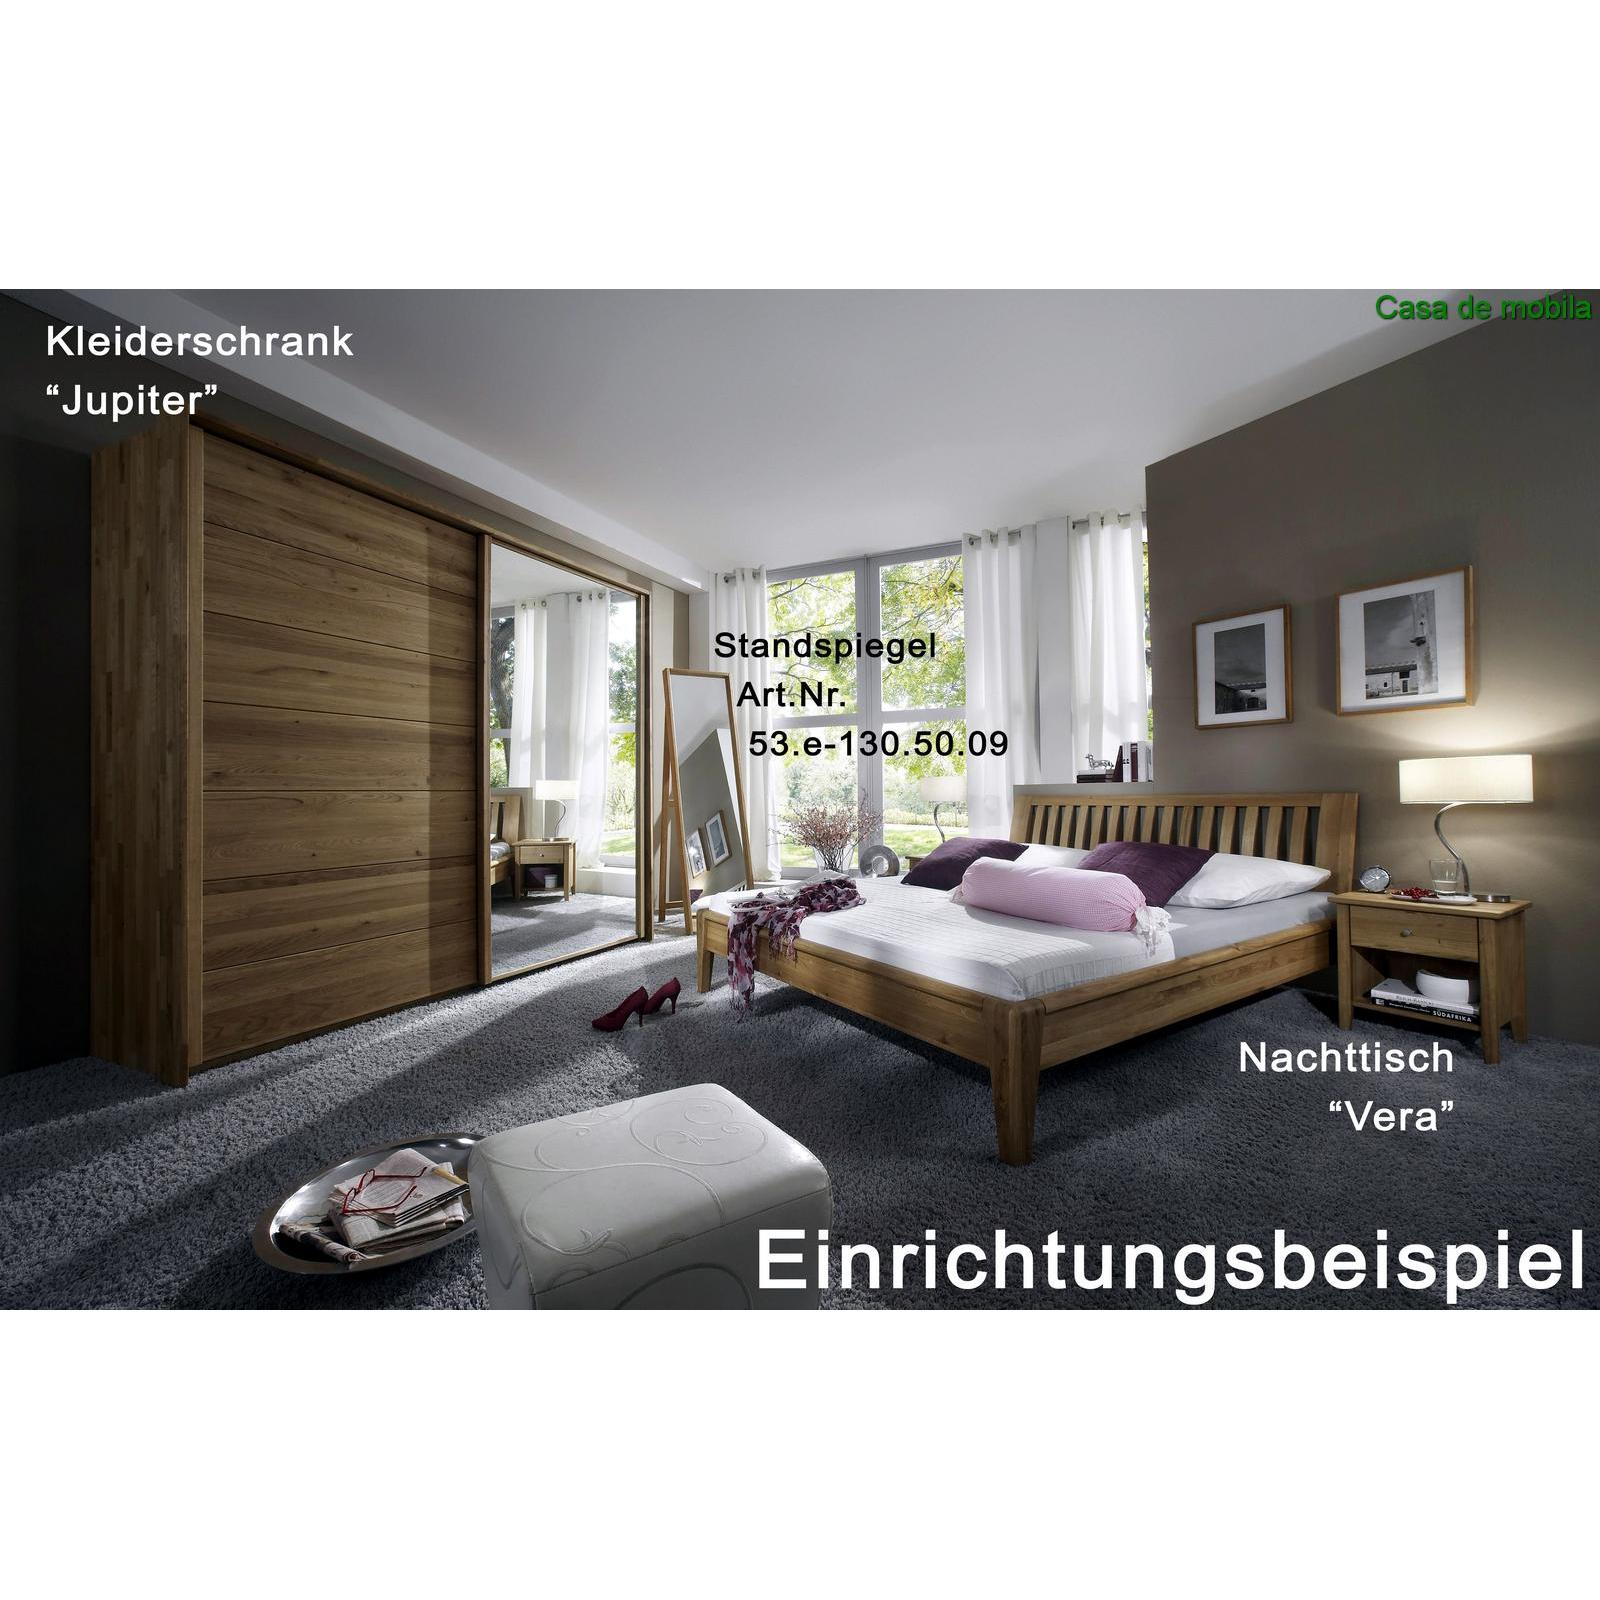 massivholz doppelbett eiche massiv sara i 140x200 wildeiche. Black Bedroom Furniture Sets. Home Design Ideas